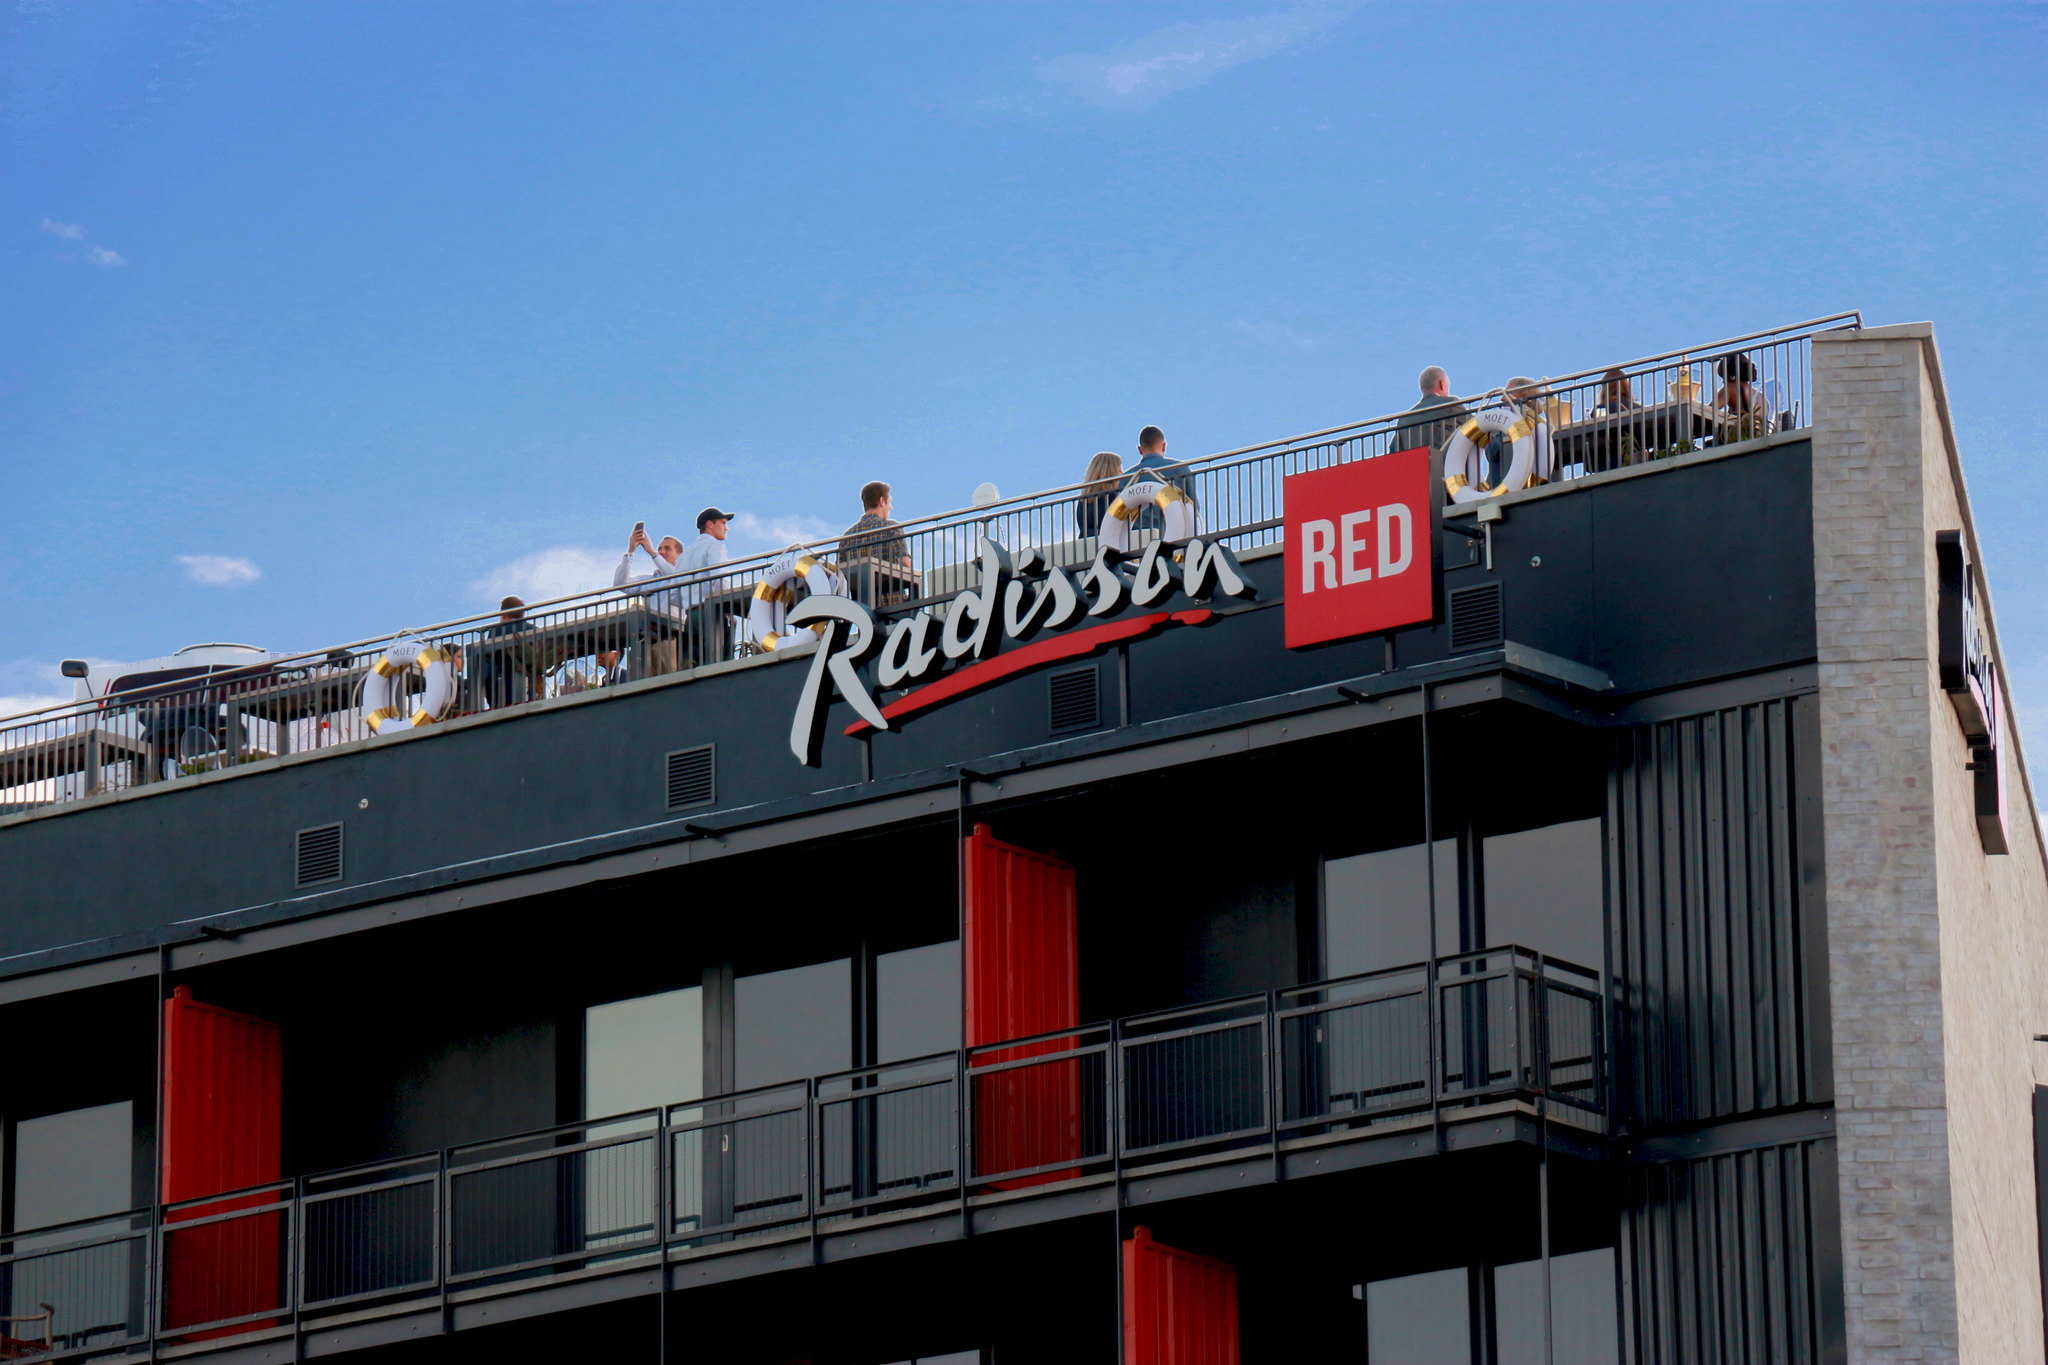 Radisson Red brand in southeast London - London Airport Transfers